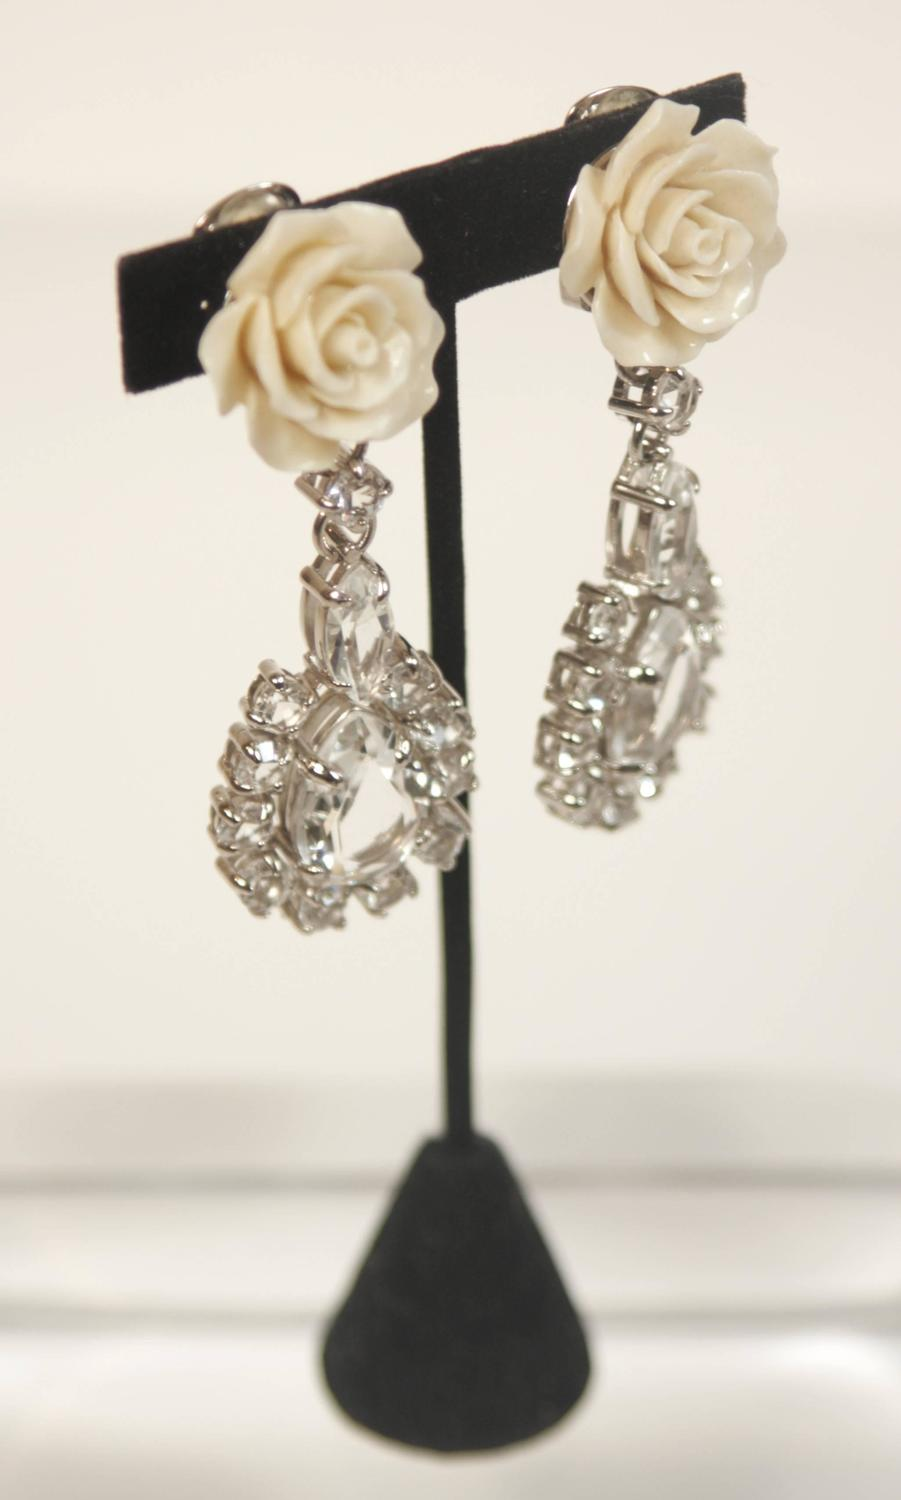 PRADA Large Rhinestone Clip On Earrings with Cream Rose ...